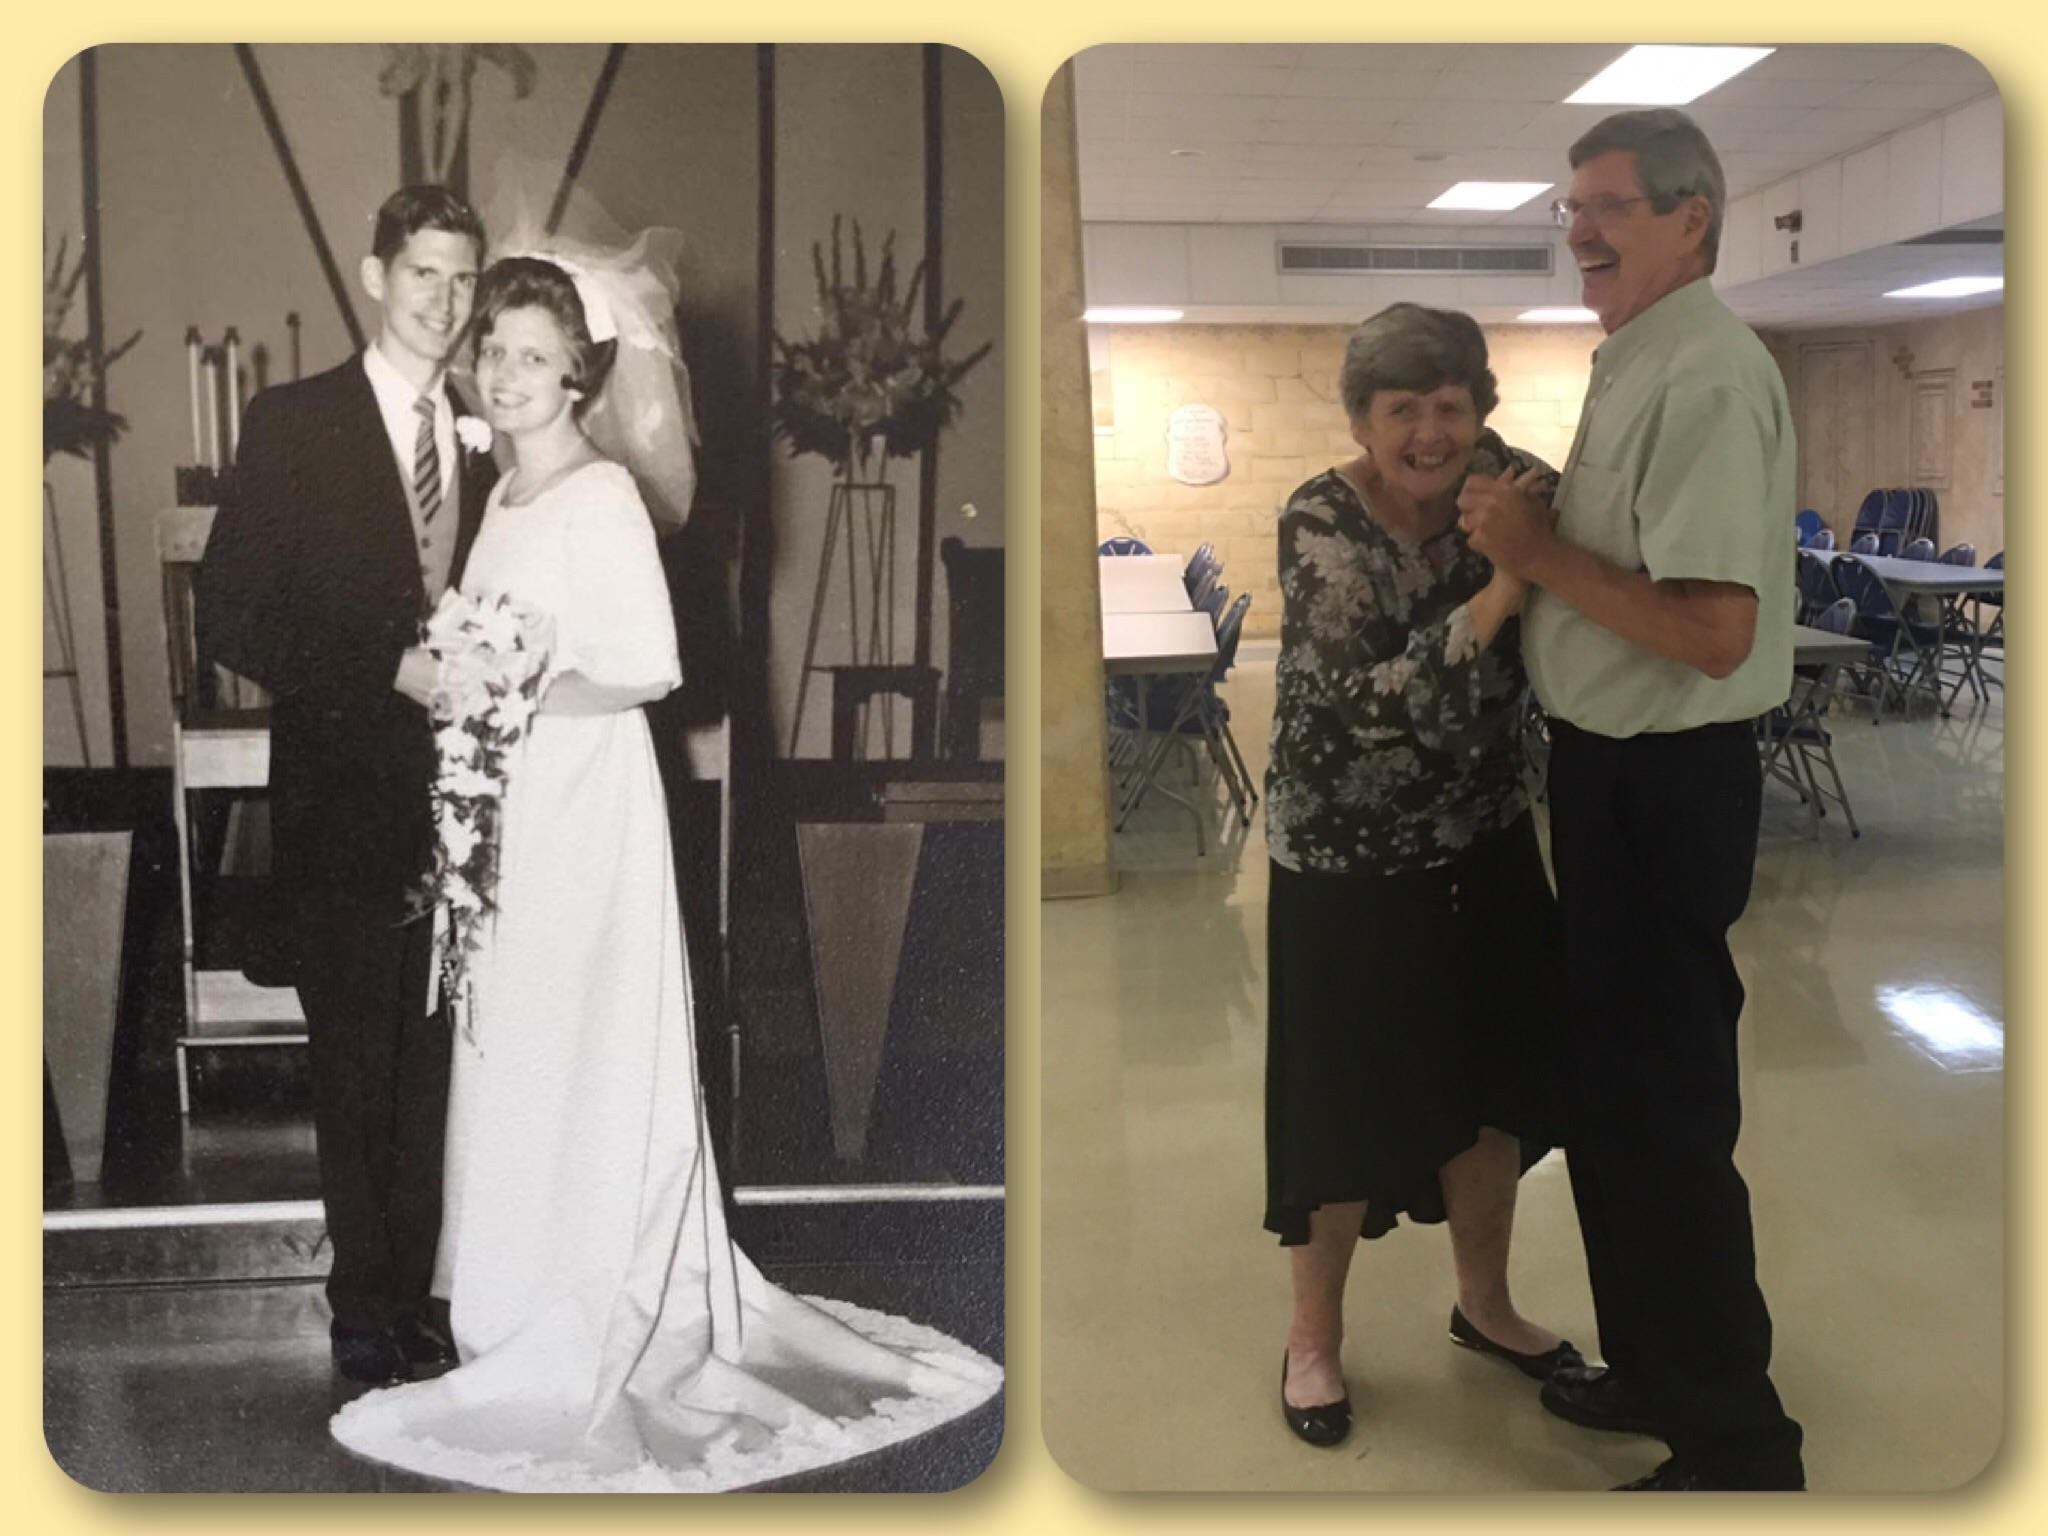 [Image] My boyfriend's parents celebrated their 50th Anniversary yesterday after having 6 kids. They remind us that through rough patches, kids and the other stresses of life, as long as you love each other, the hard work is worth it.